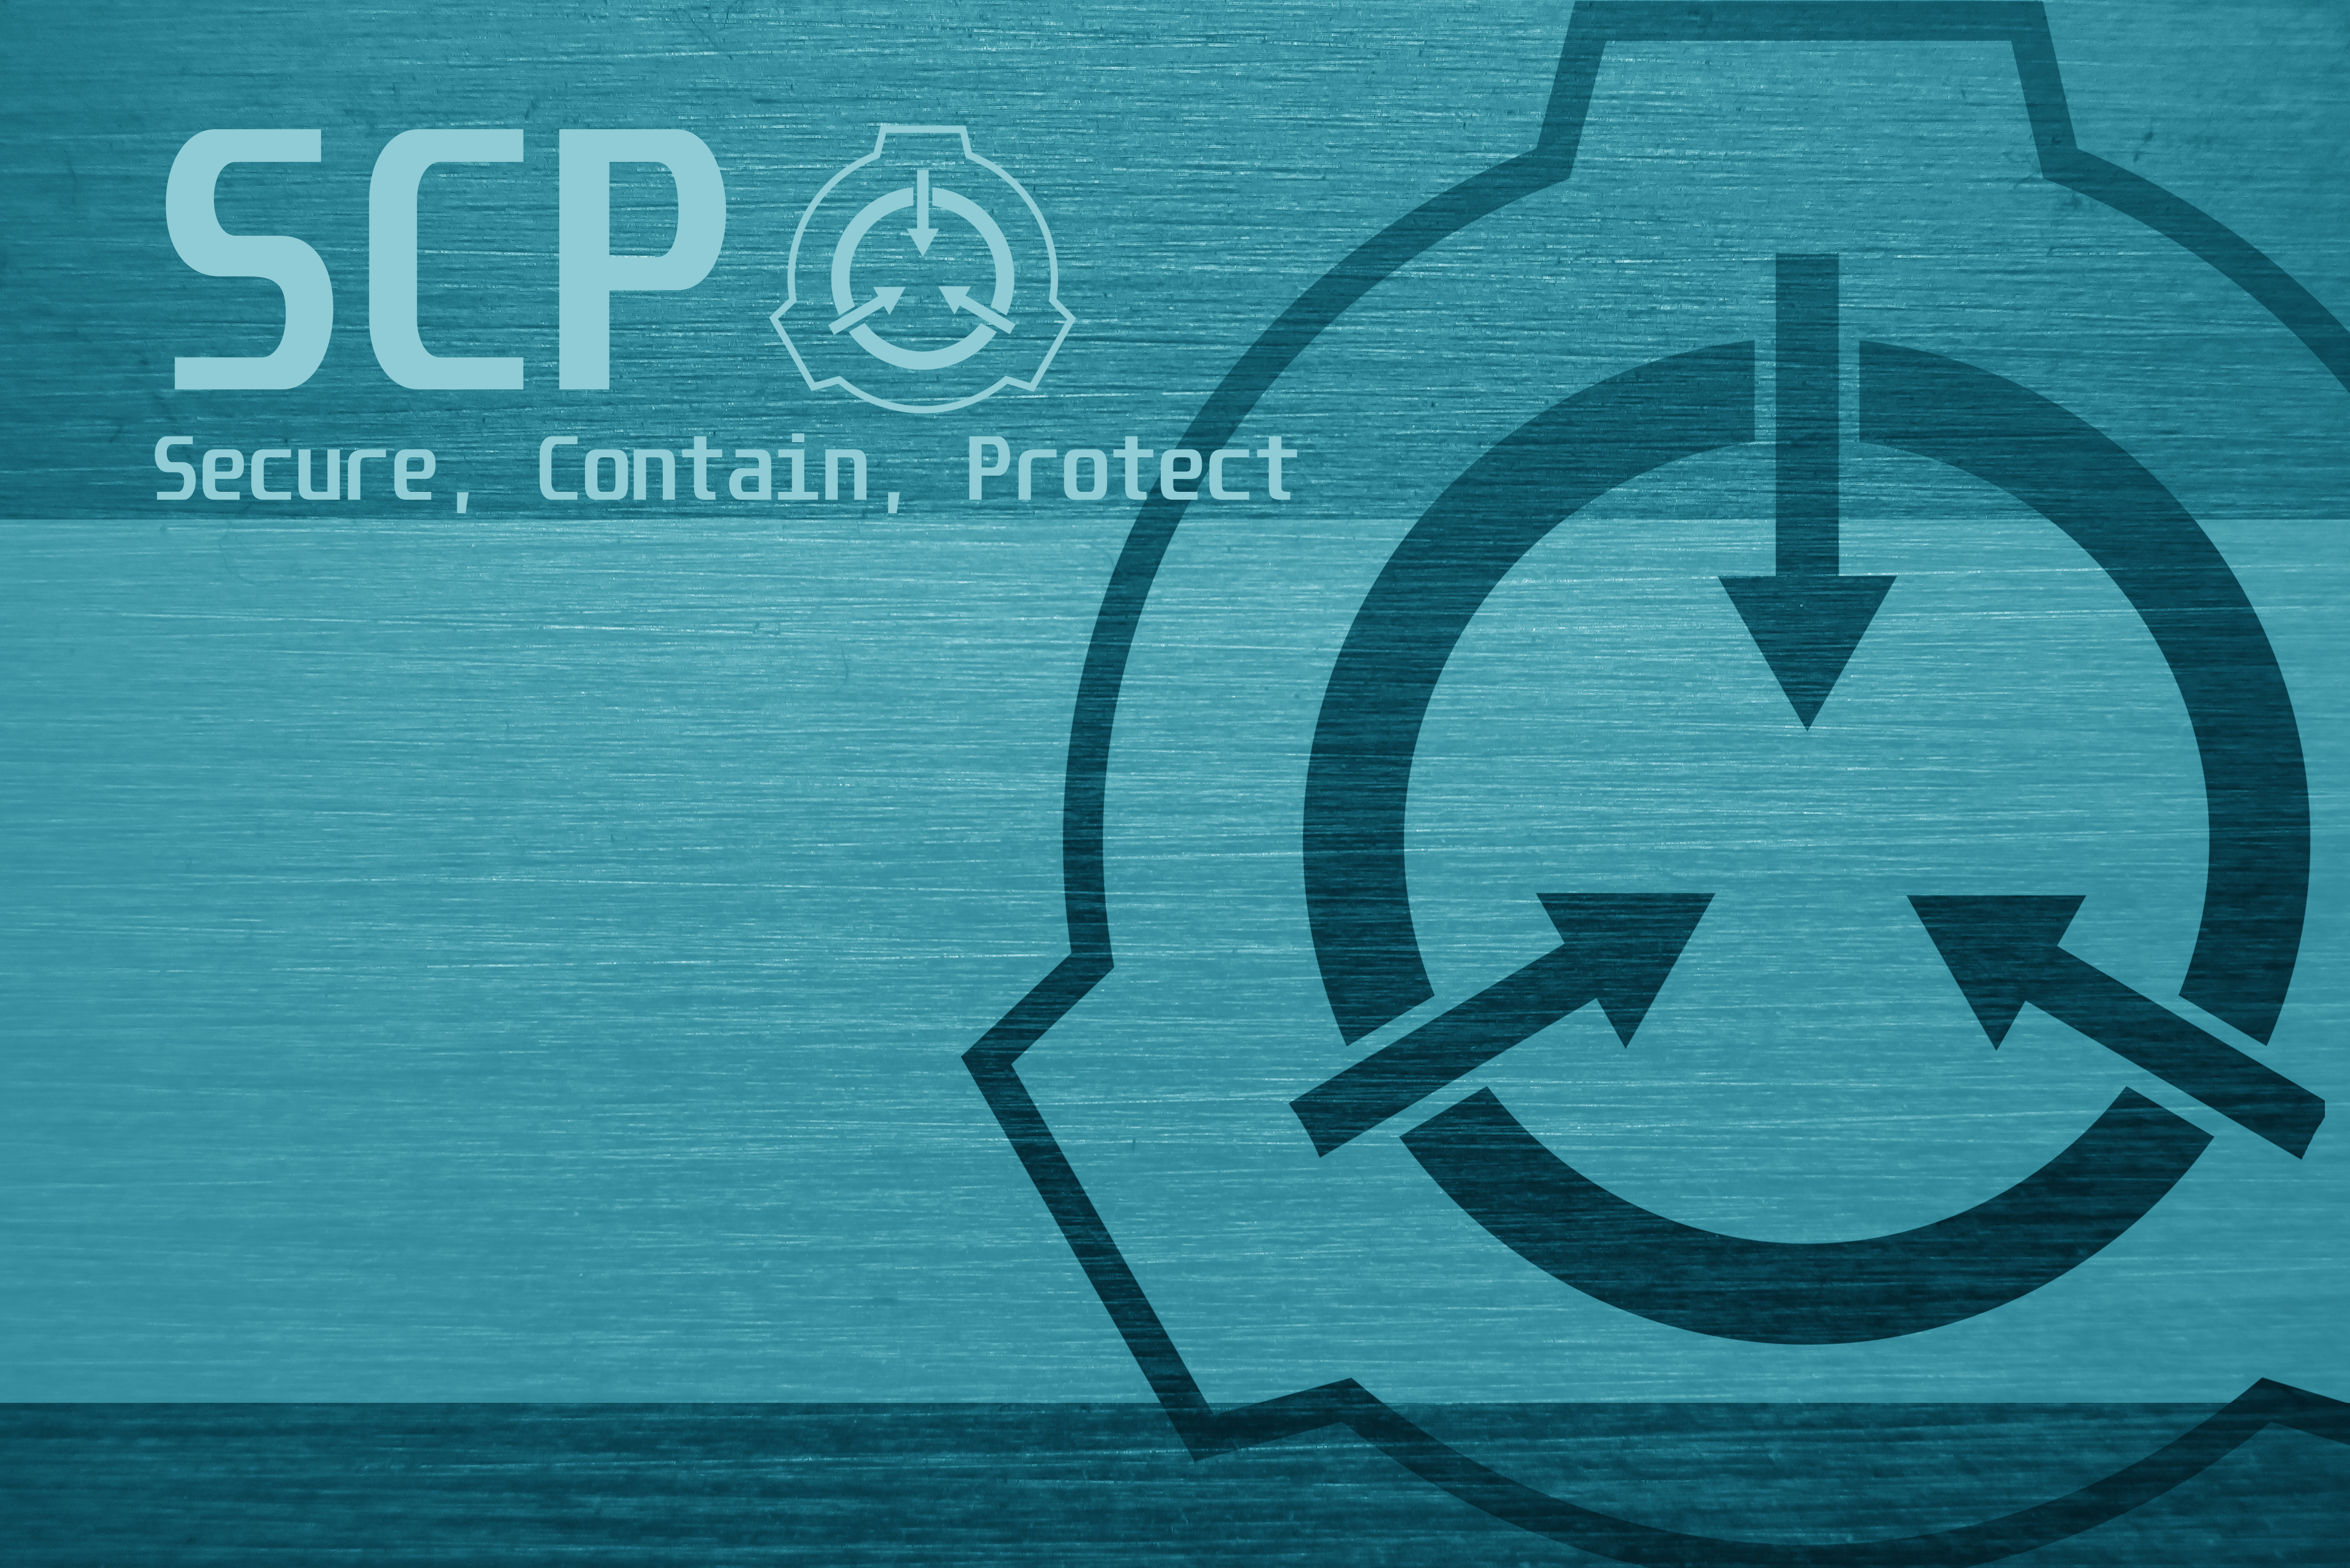 SCP-Ccard-MetalBlue-01.png